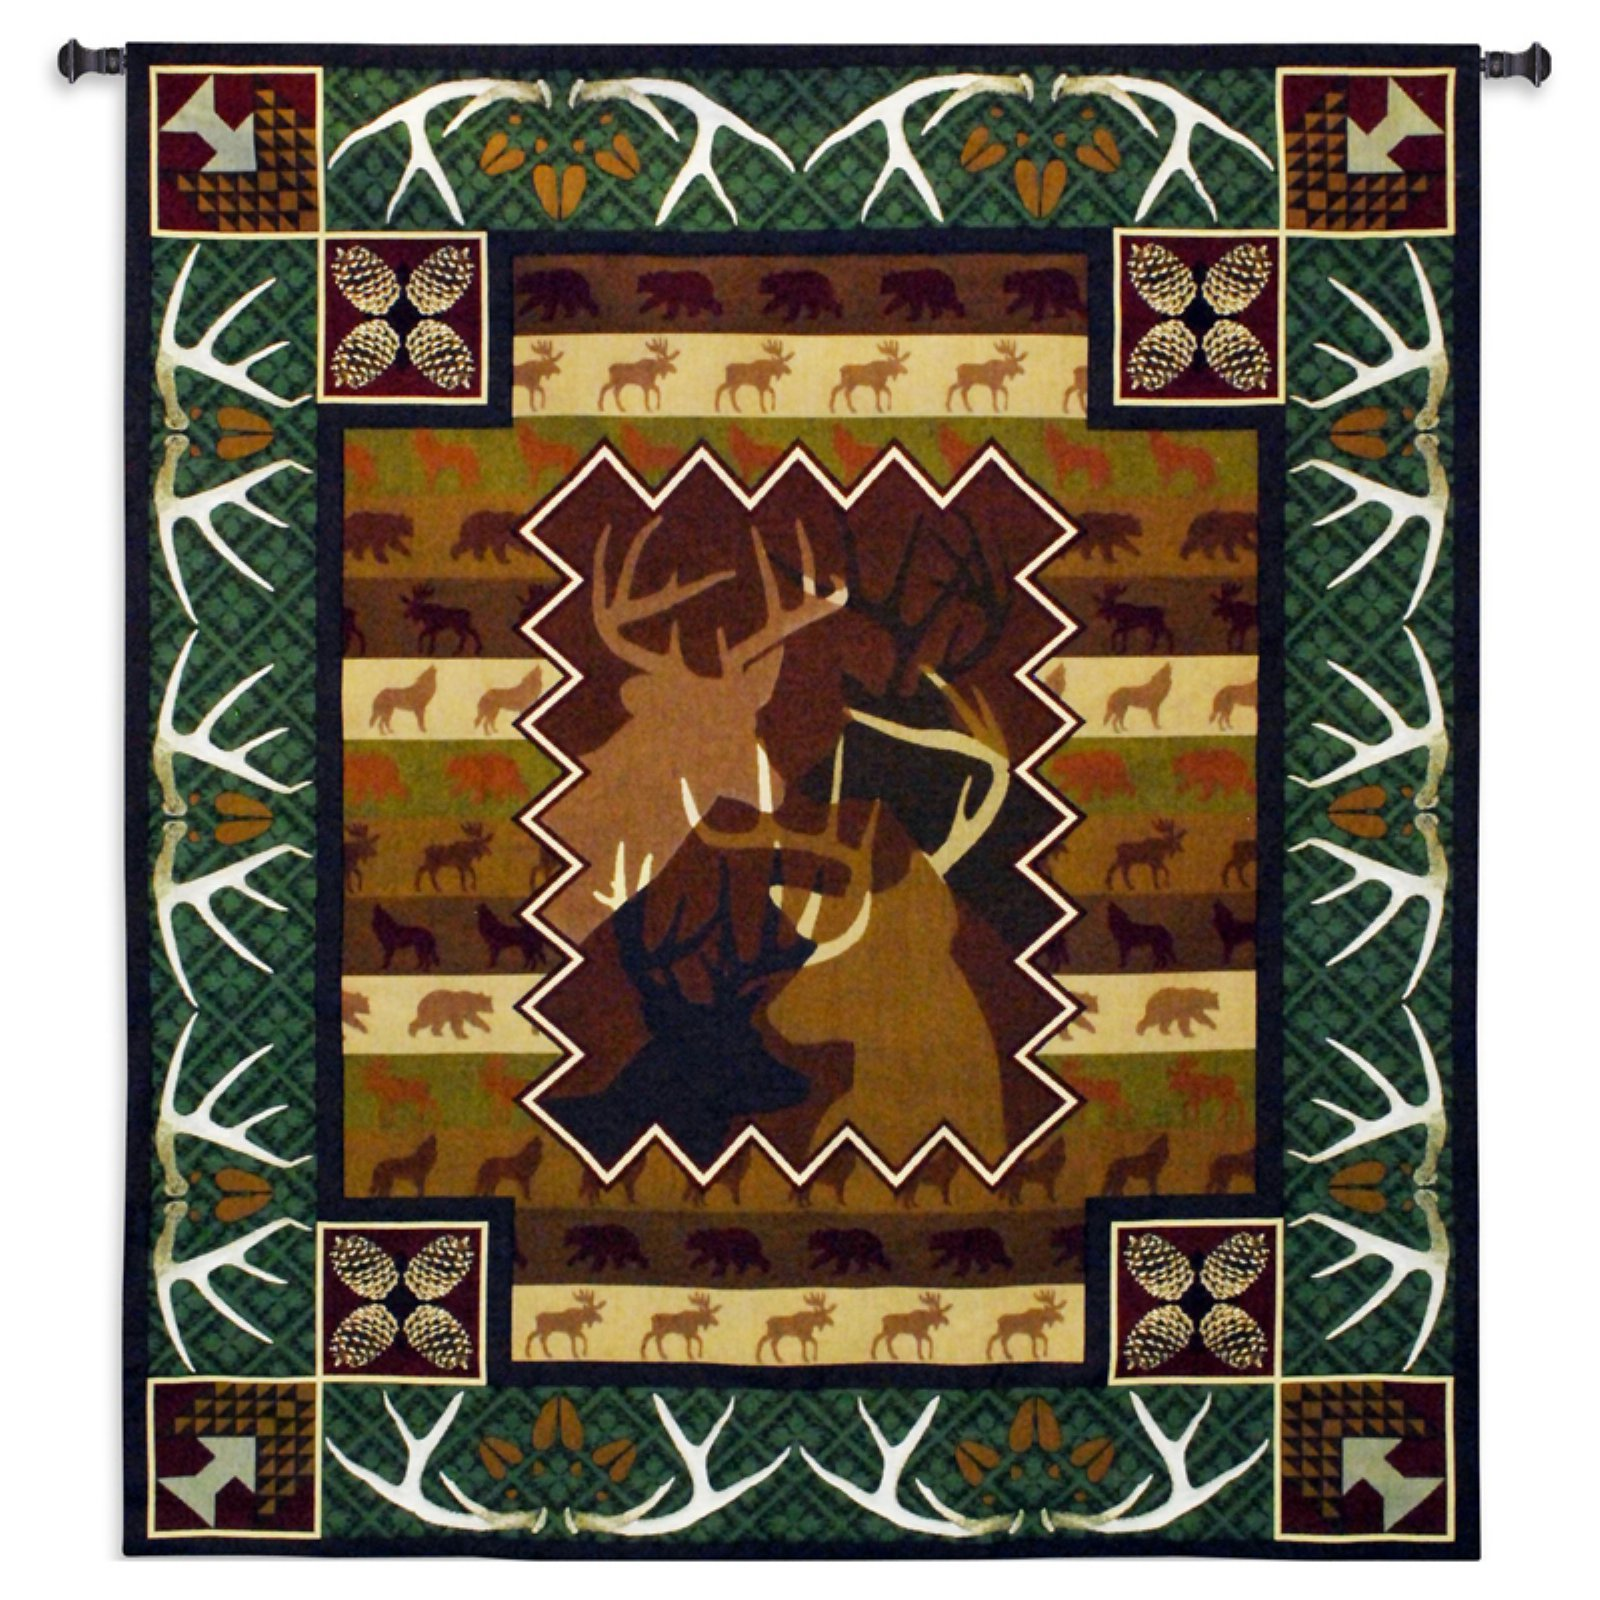 Click here to buy Fine Art Tapestries Antlers Wall Tapestry by Supplier Generic.